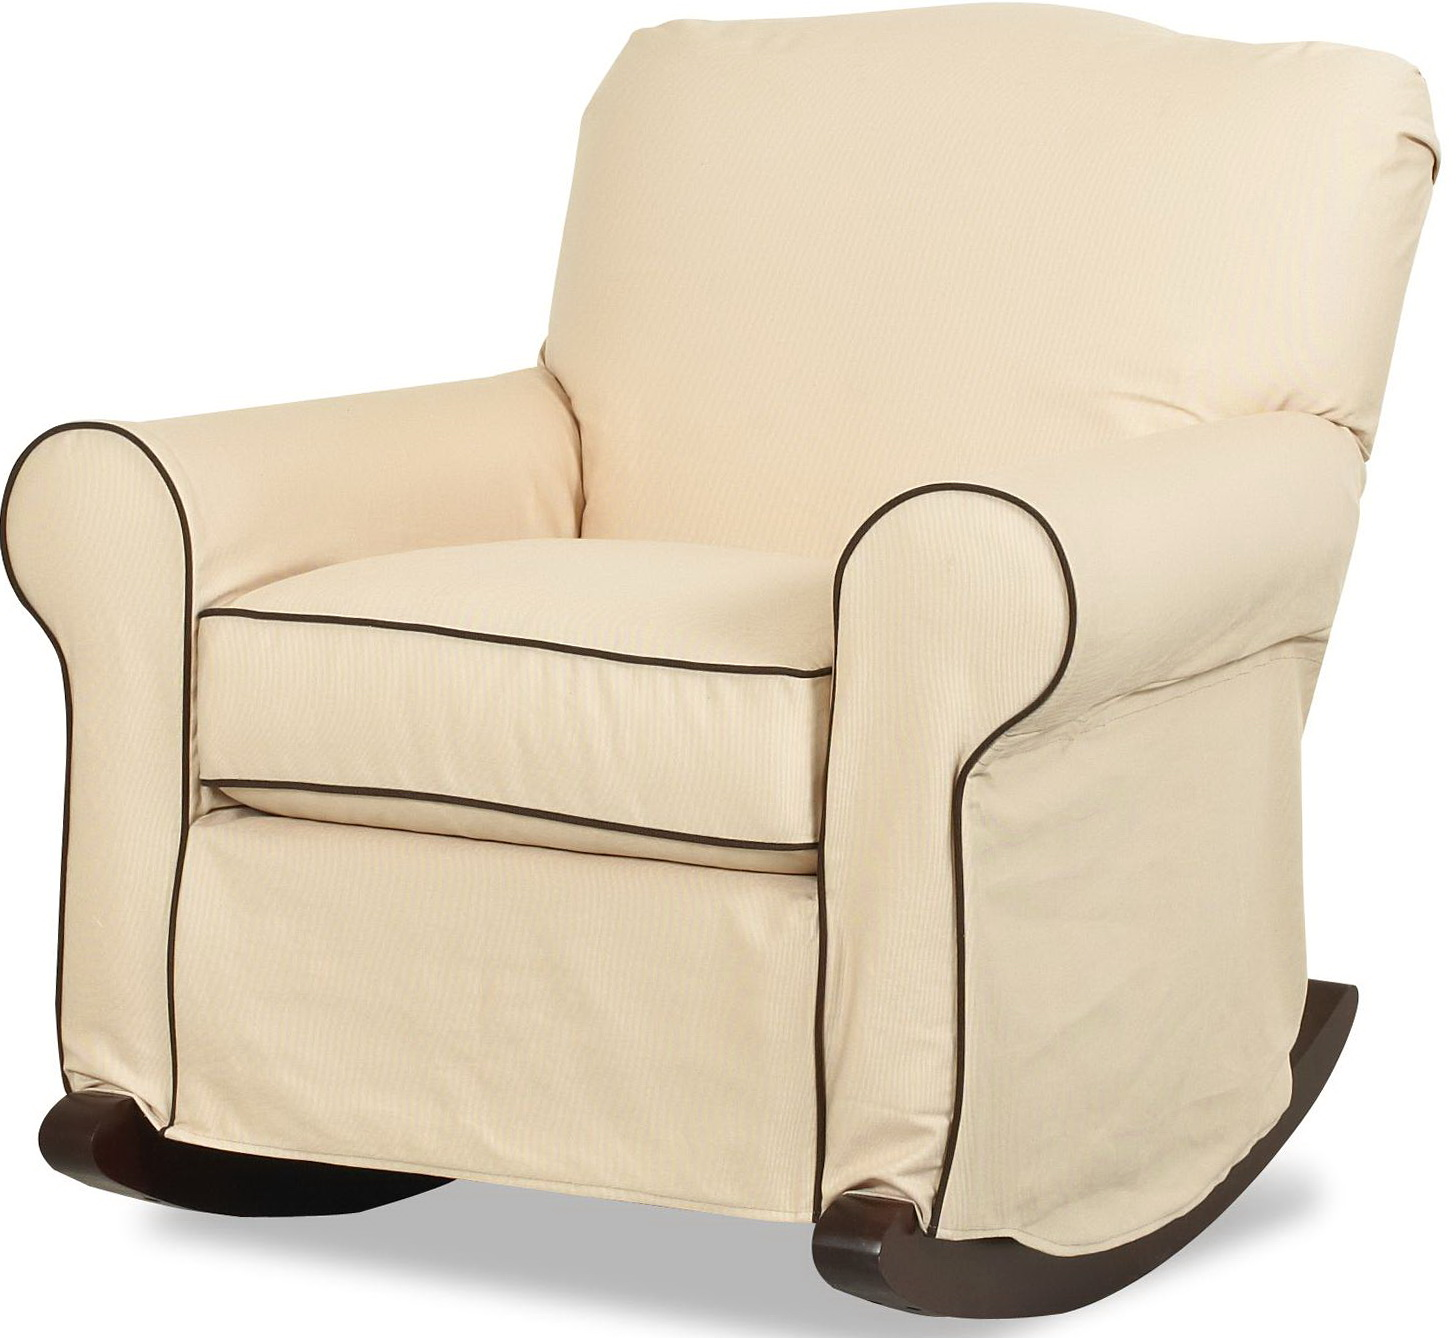 Upholstered Rocking Chair Slipcover